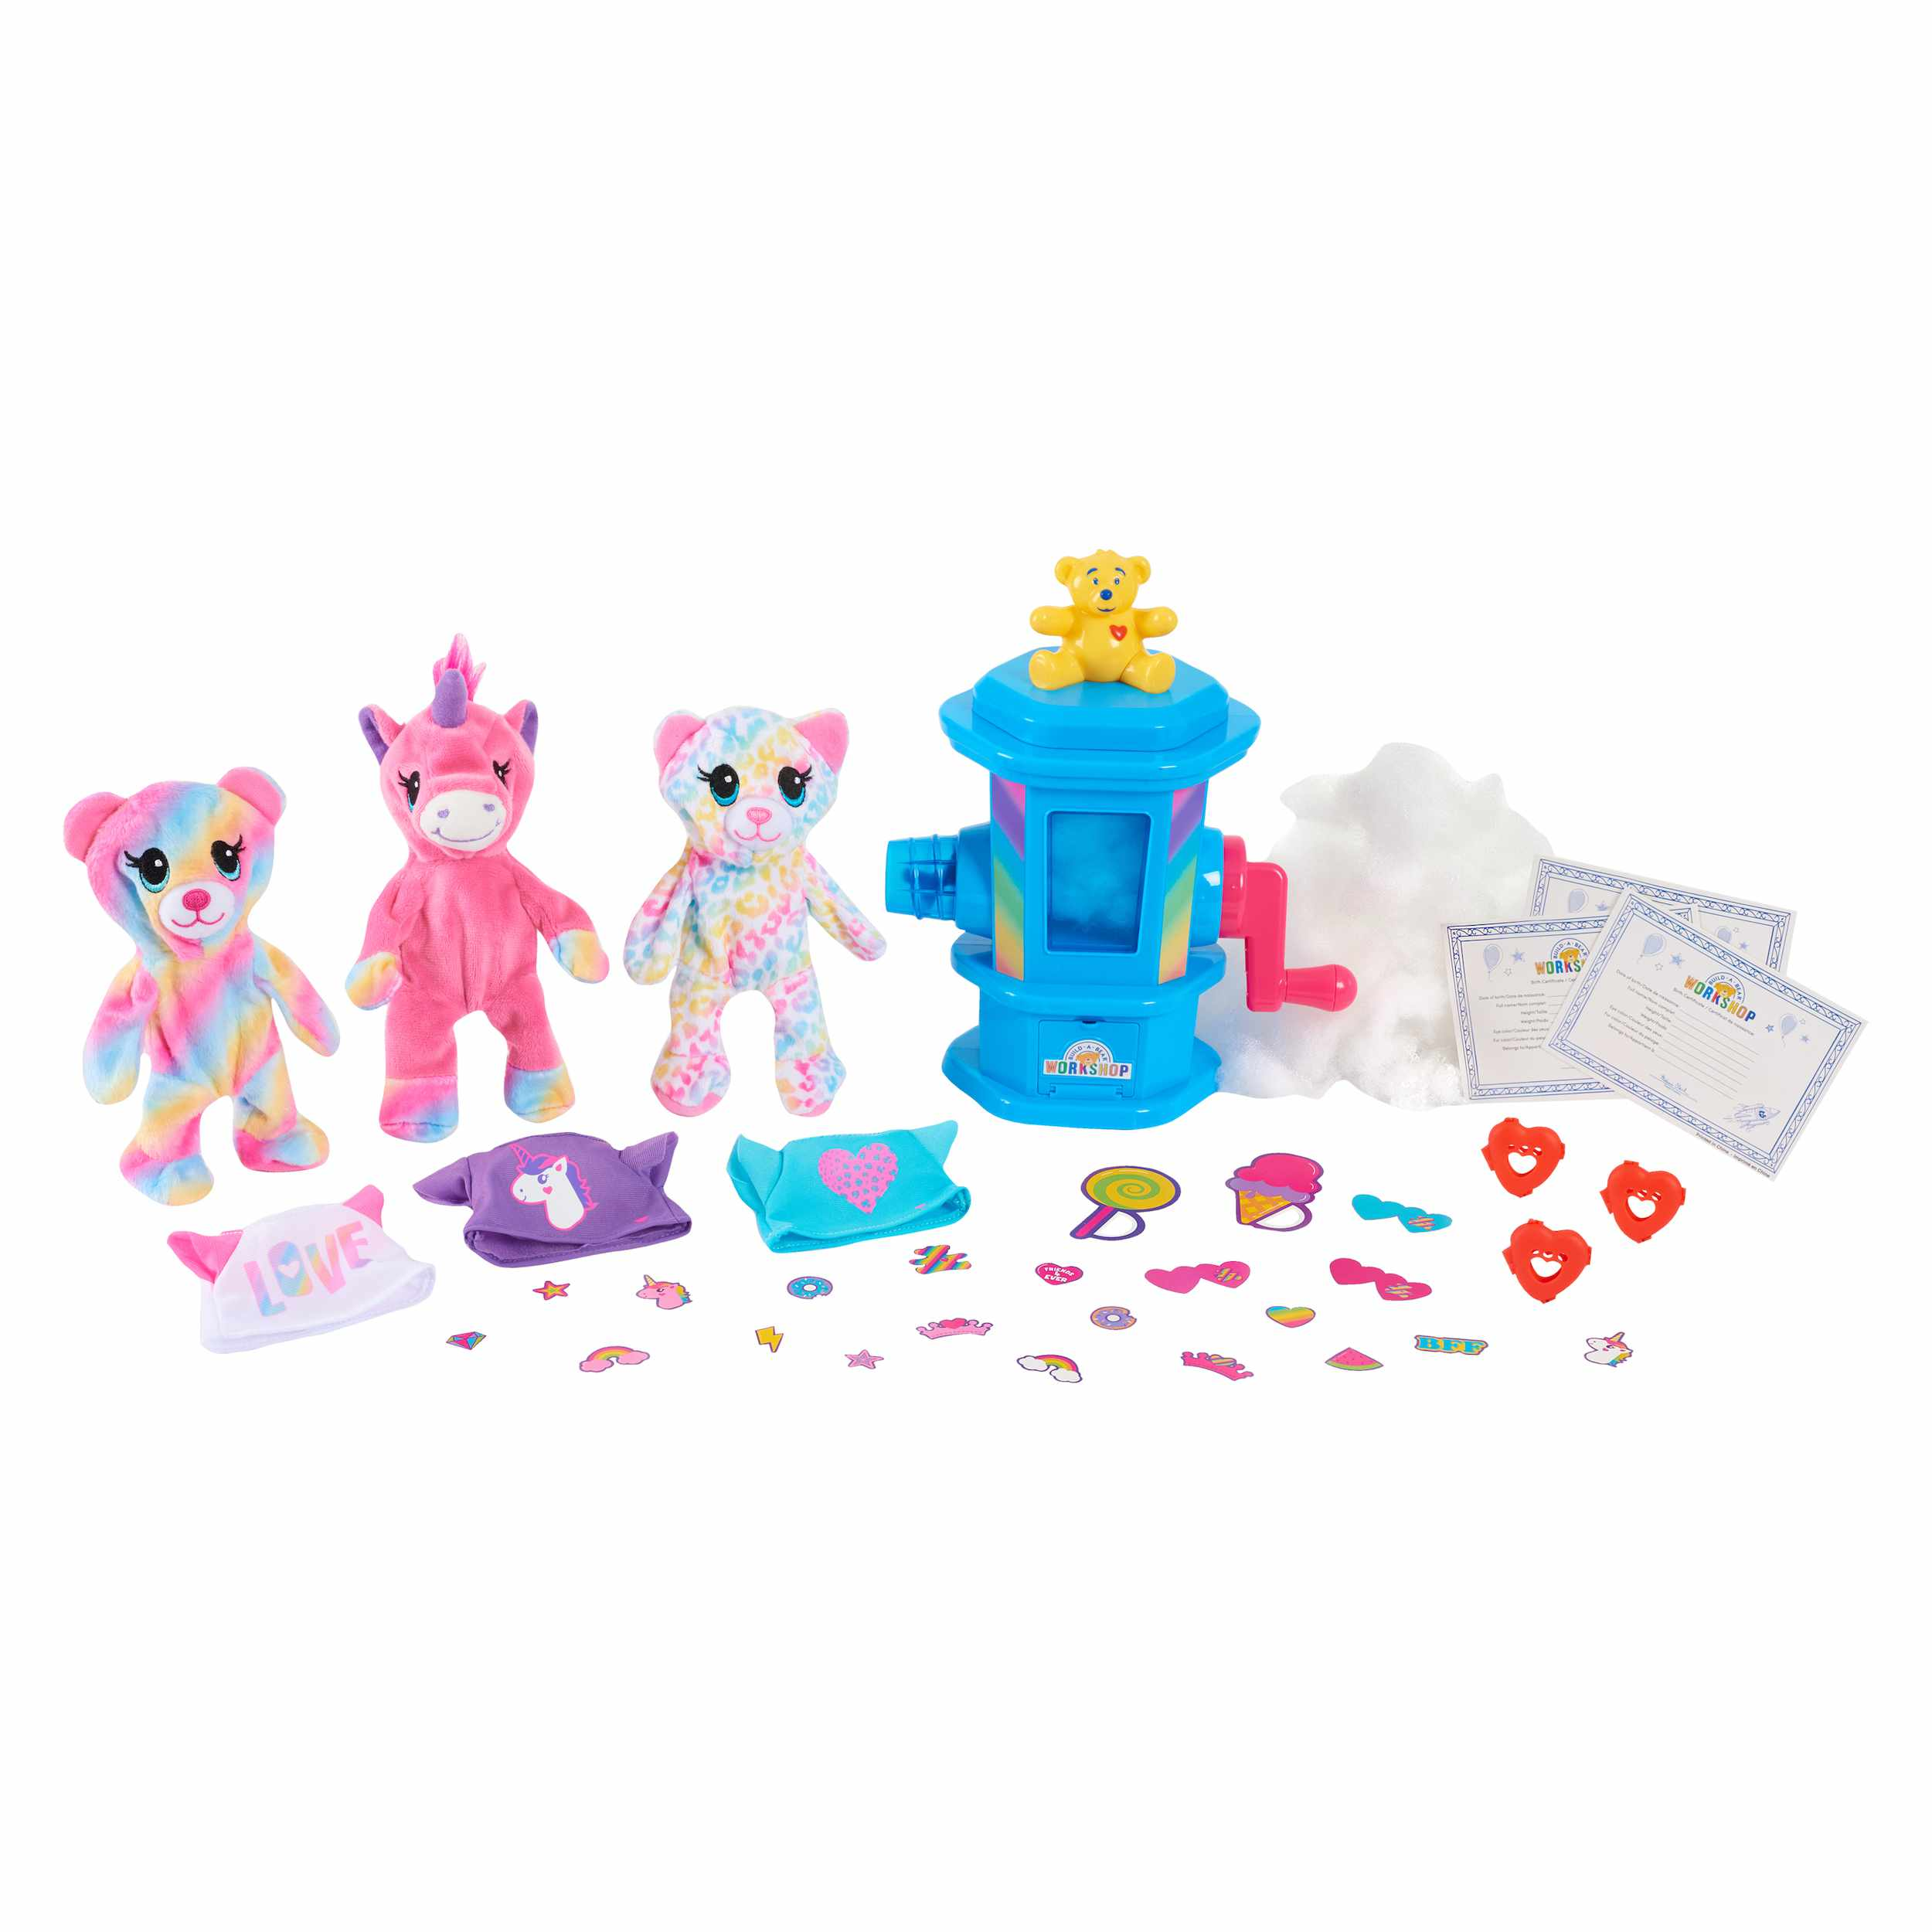 Build A Bear Christmas 2019.The 36 Must Have Toys For Christmas 2019